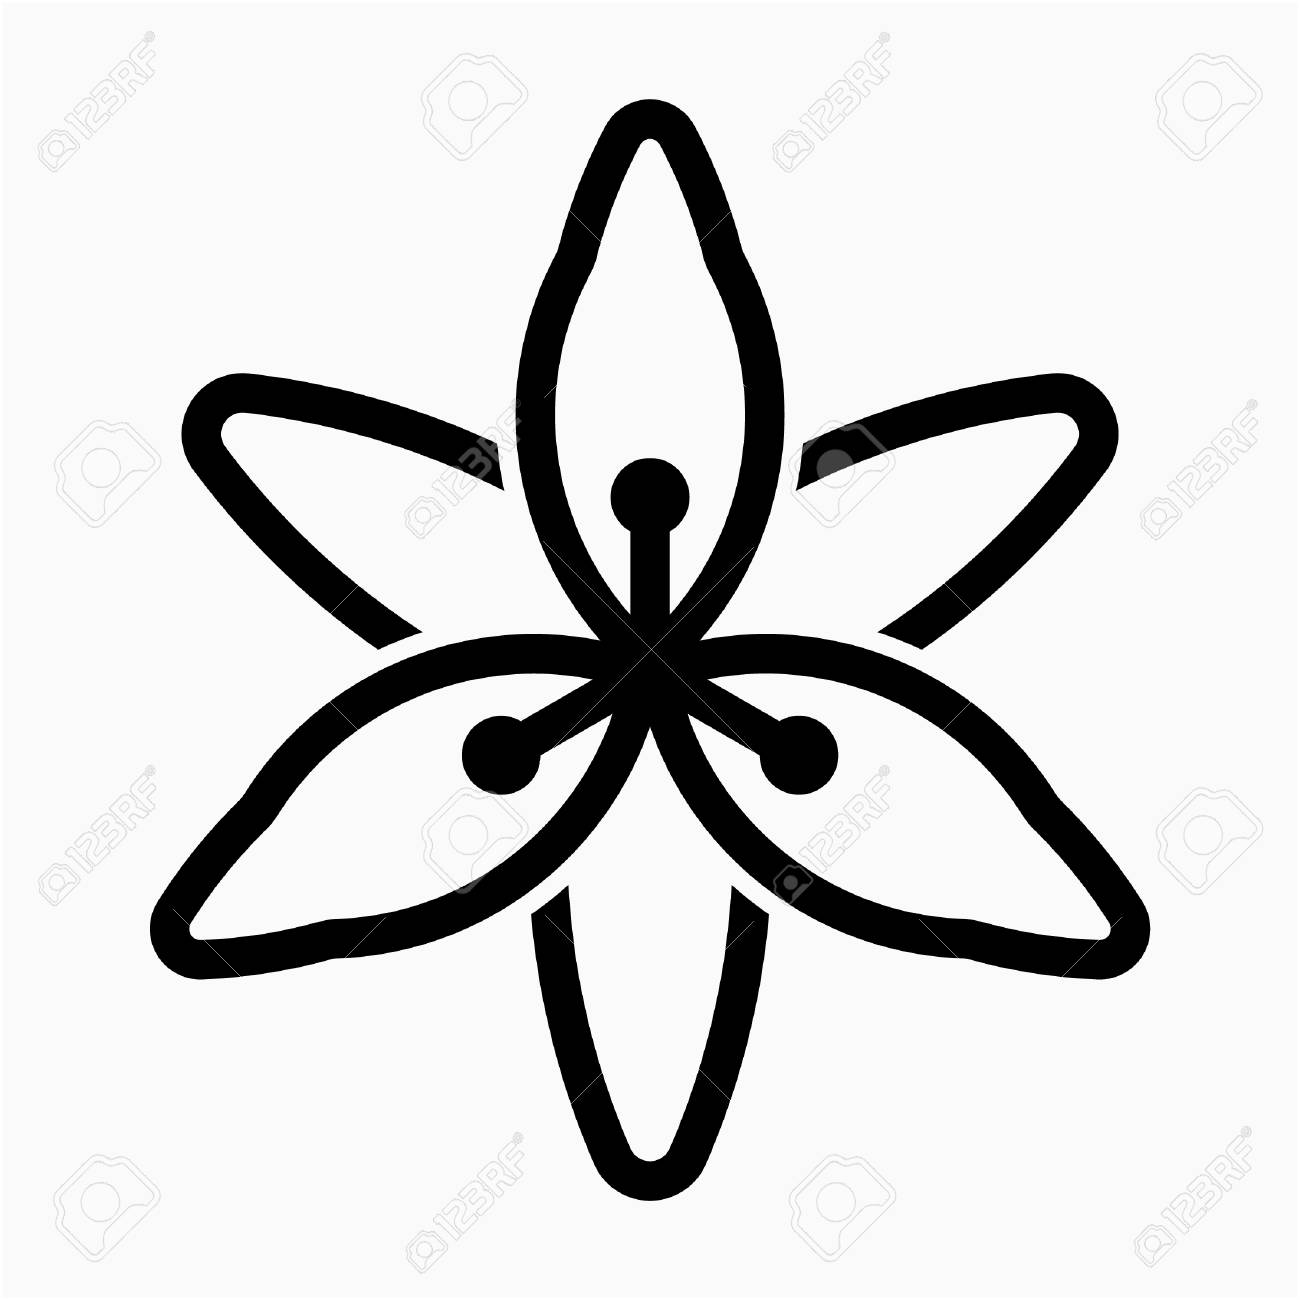 Outline Lily Flower Pixel Perfect Vector Icon Royalty Free Cliparts